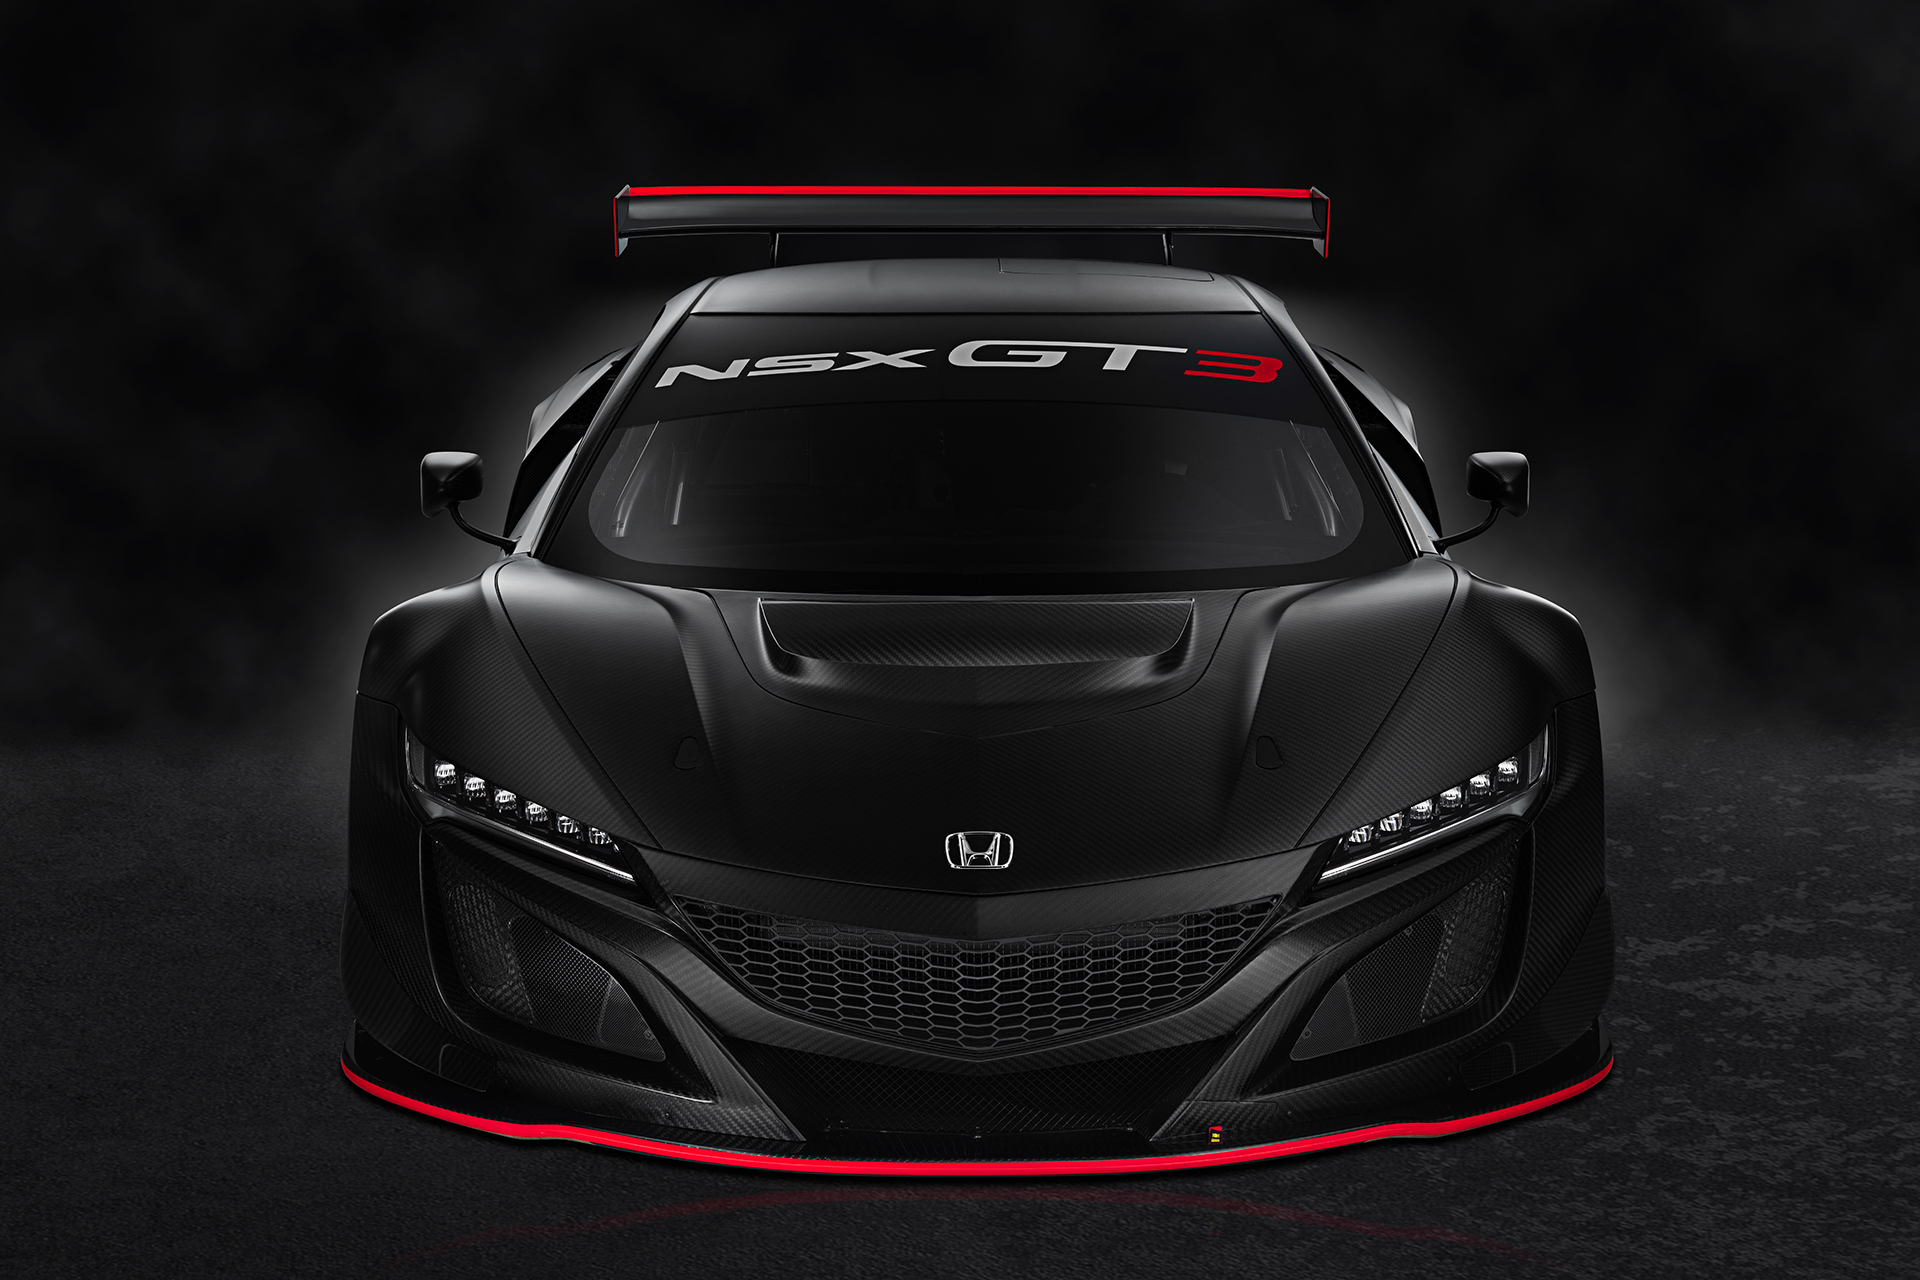 Honda NSX GT3 to contest FIA GT World Cup in Macau